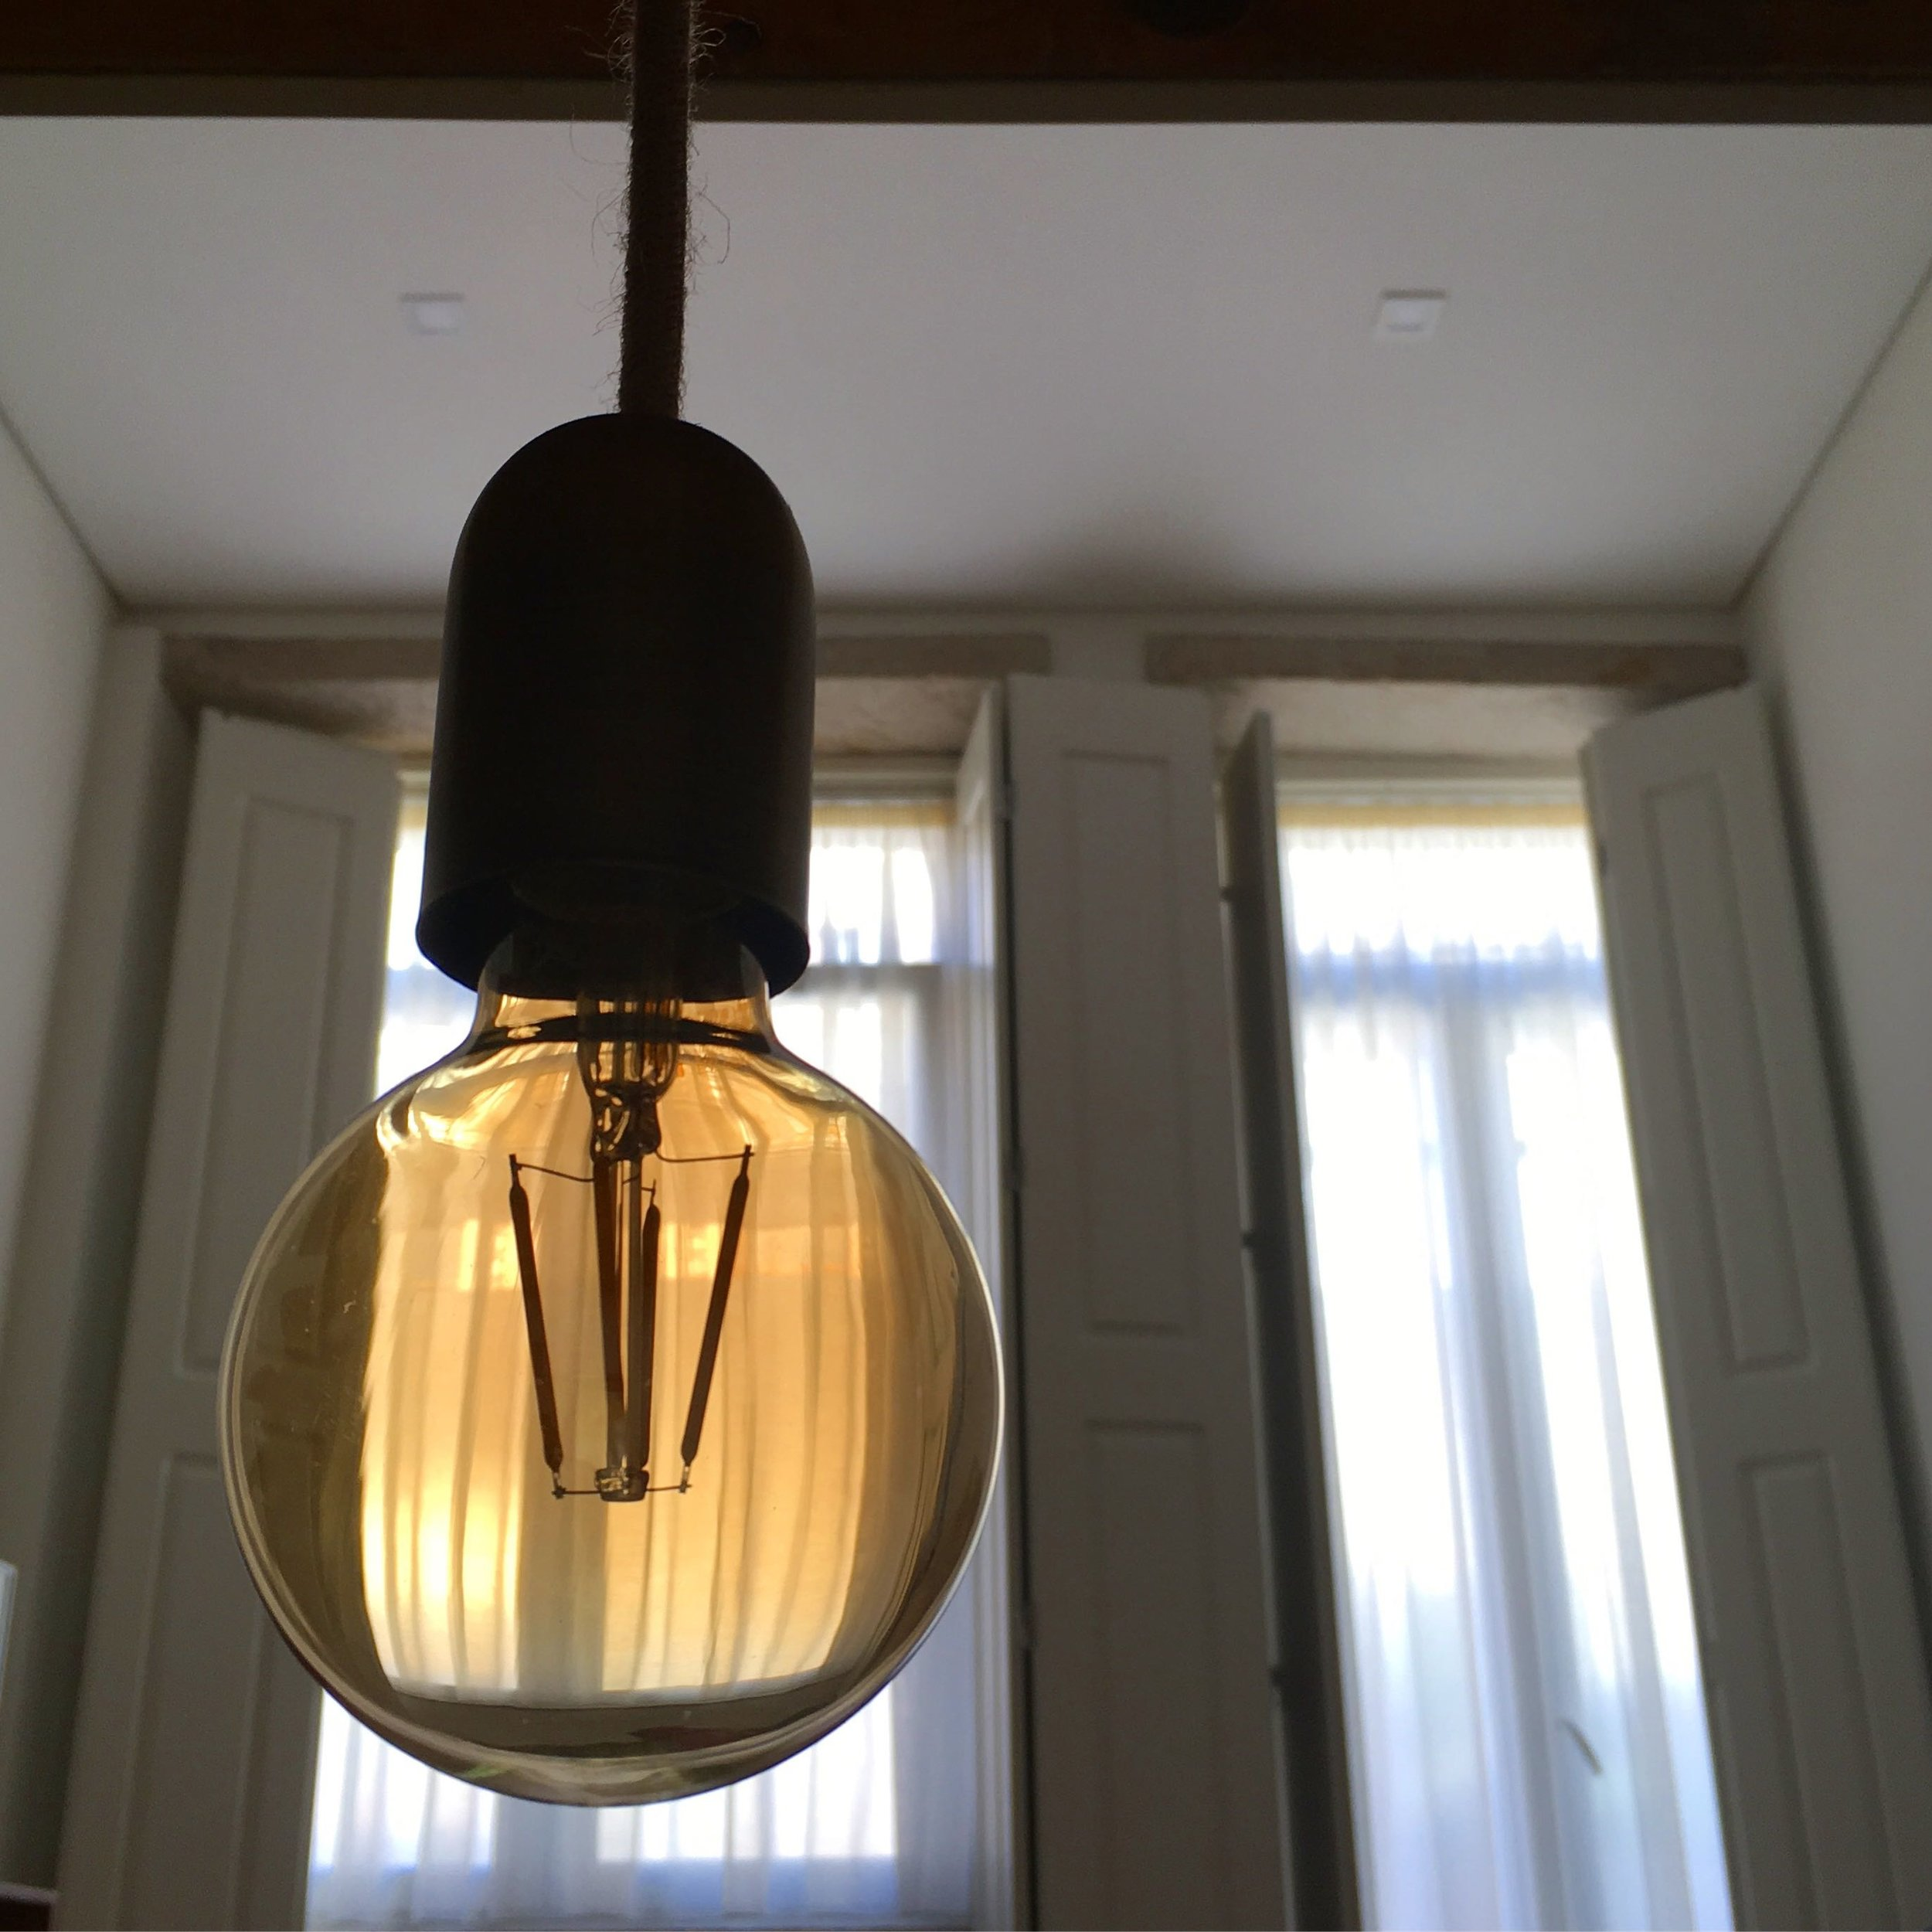 More great lights in the kitchen in the quirky apartment in Porto's Bomfim